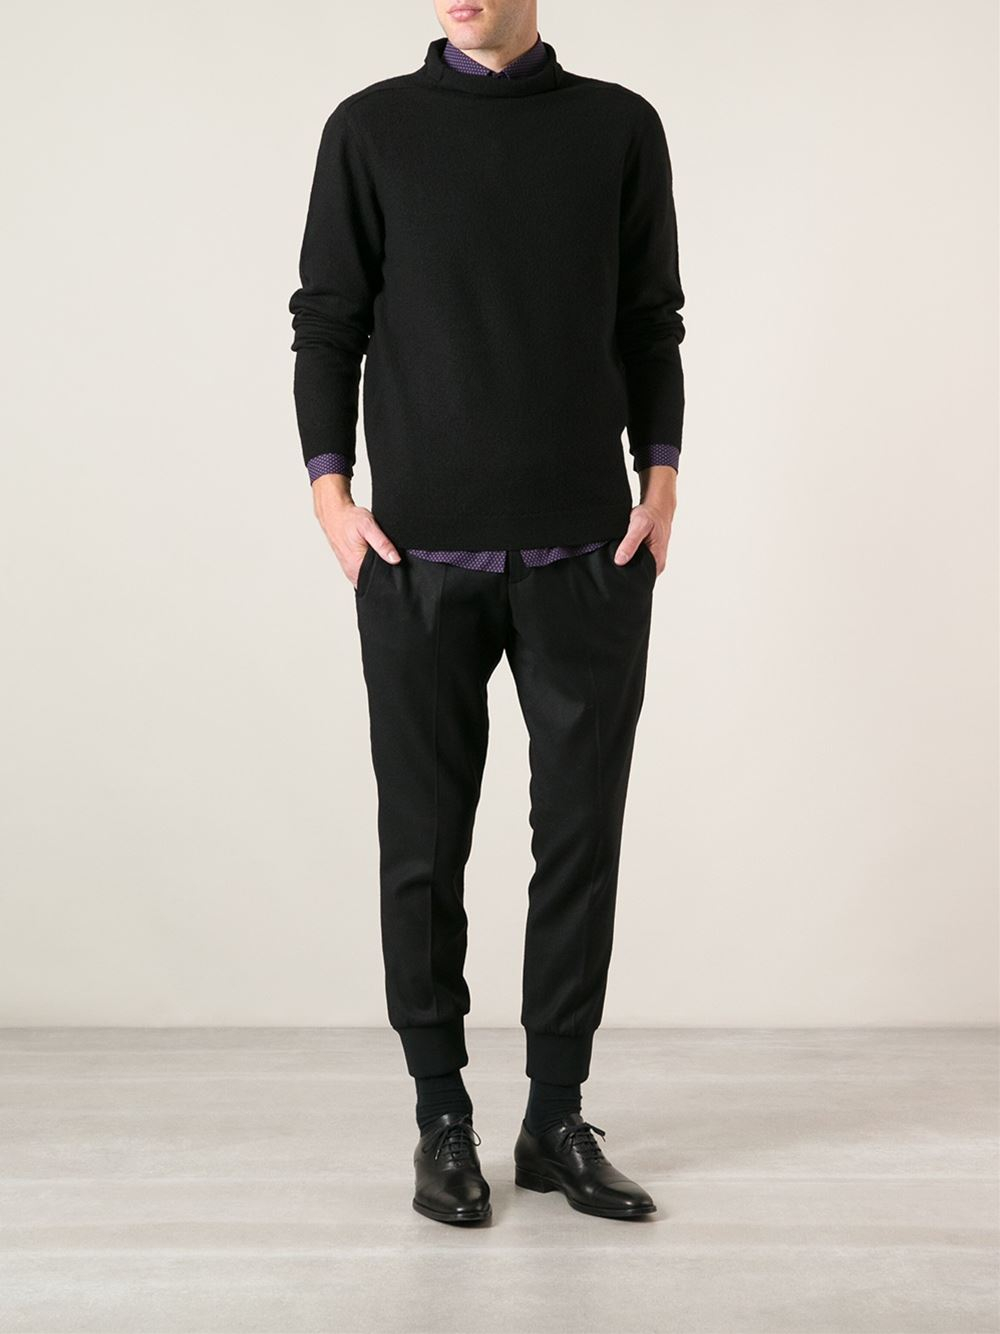 black single men in hugo Shop the boss black casual range from selfridges for a wide range of boss black boss by hugo boss boss eur 39 / 5 uk men (1) eur 40 / 6 uk men (24) eur 41.